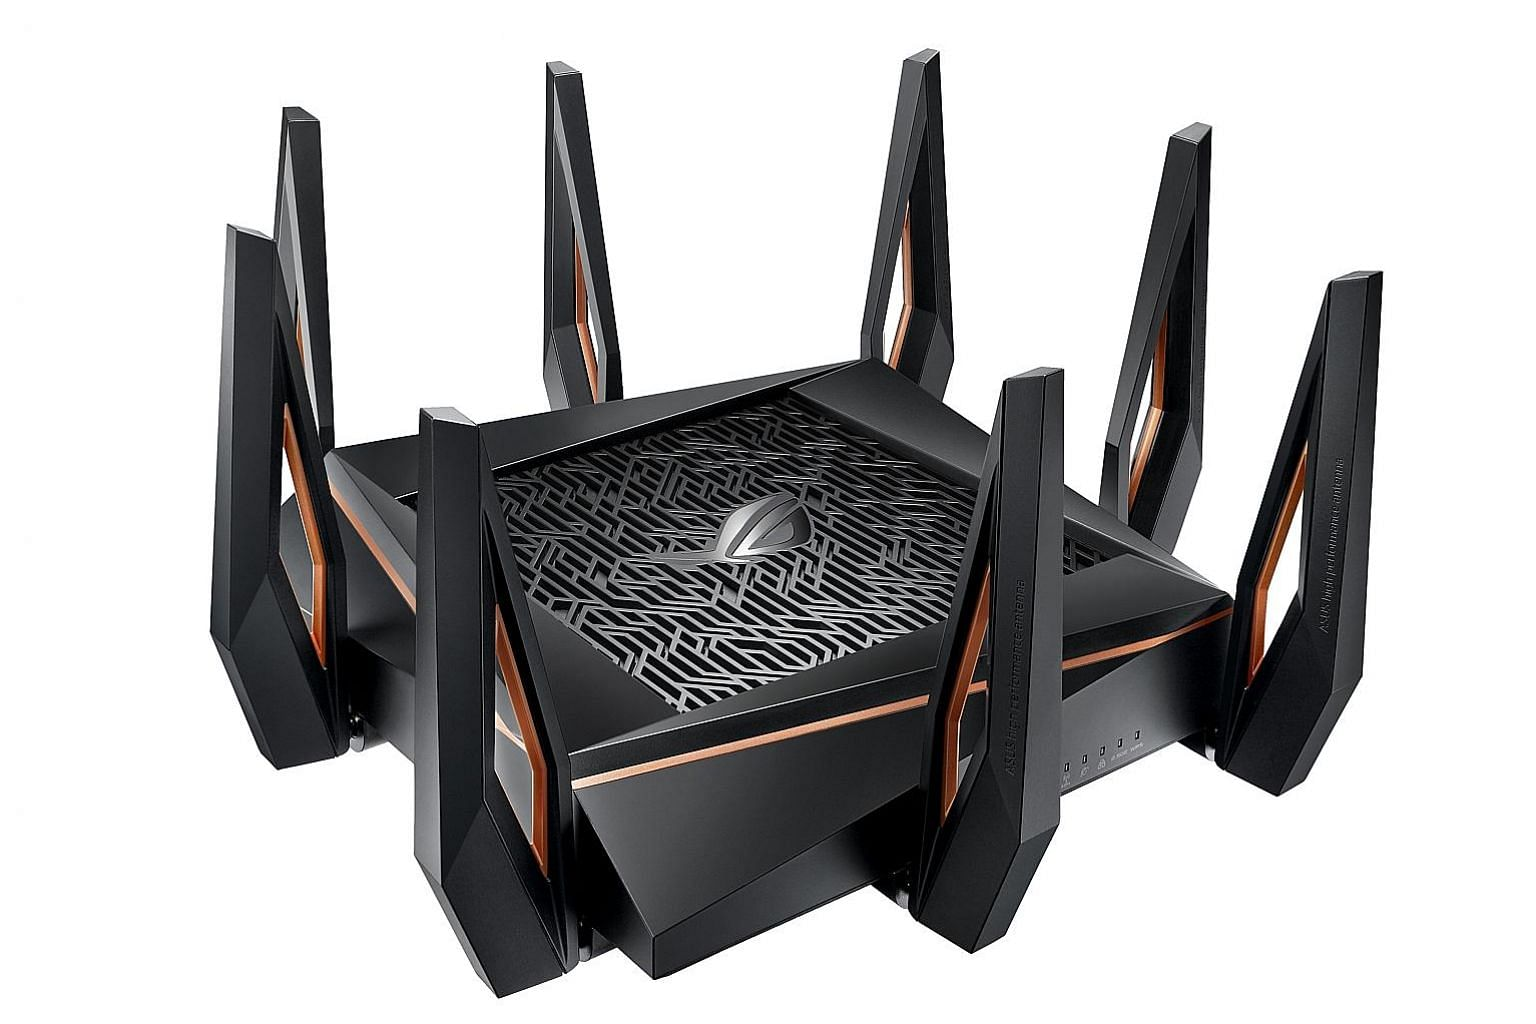 Asus' ROG Rapture GT-AX11000 tri-band gaming router supports Wi-Fi 6.